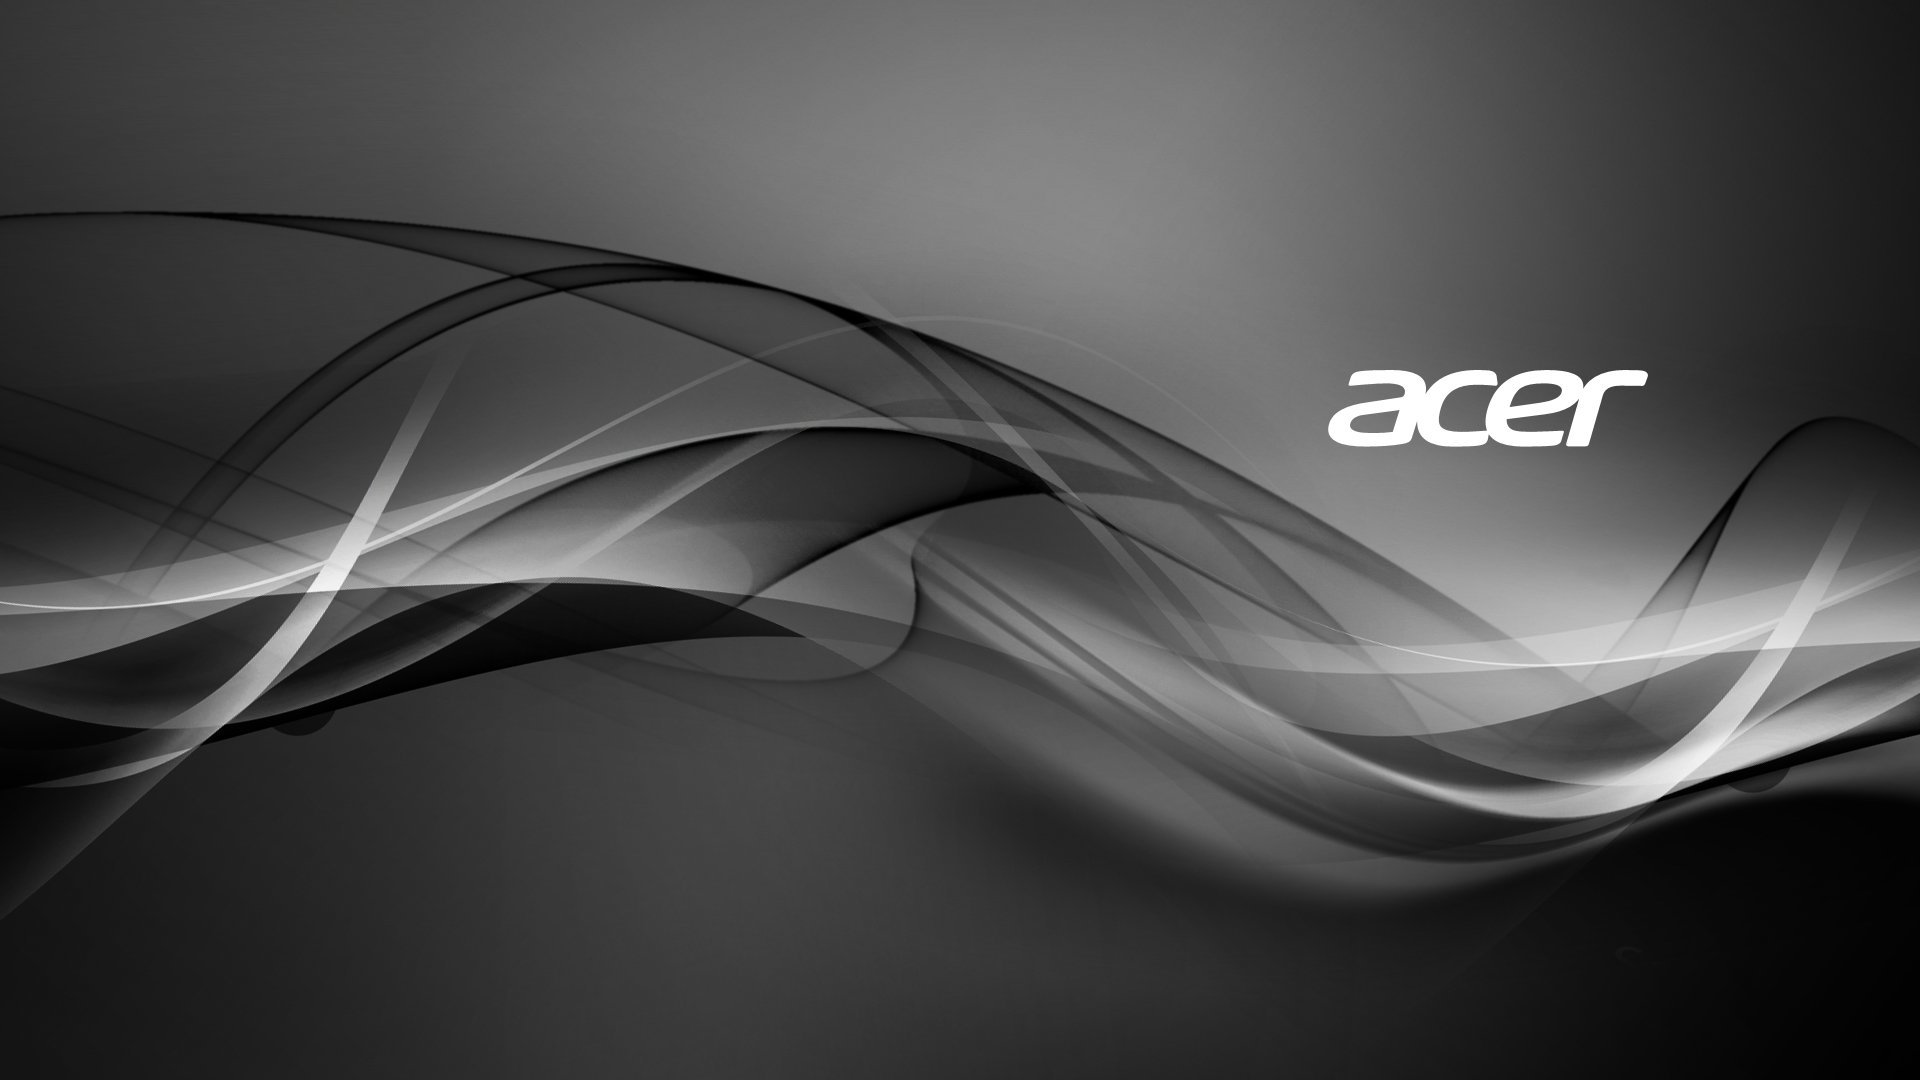 Download hd 1080p Acer PC background ID:291028 for free